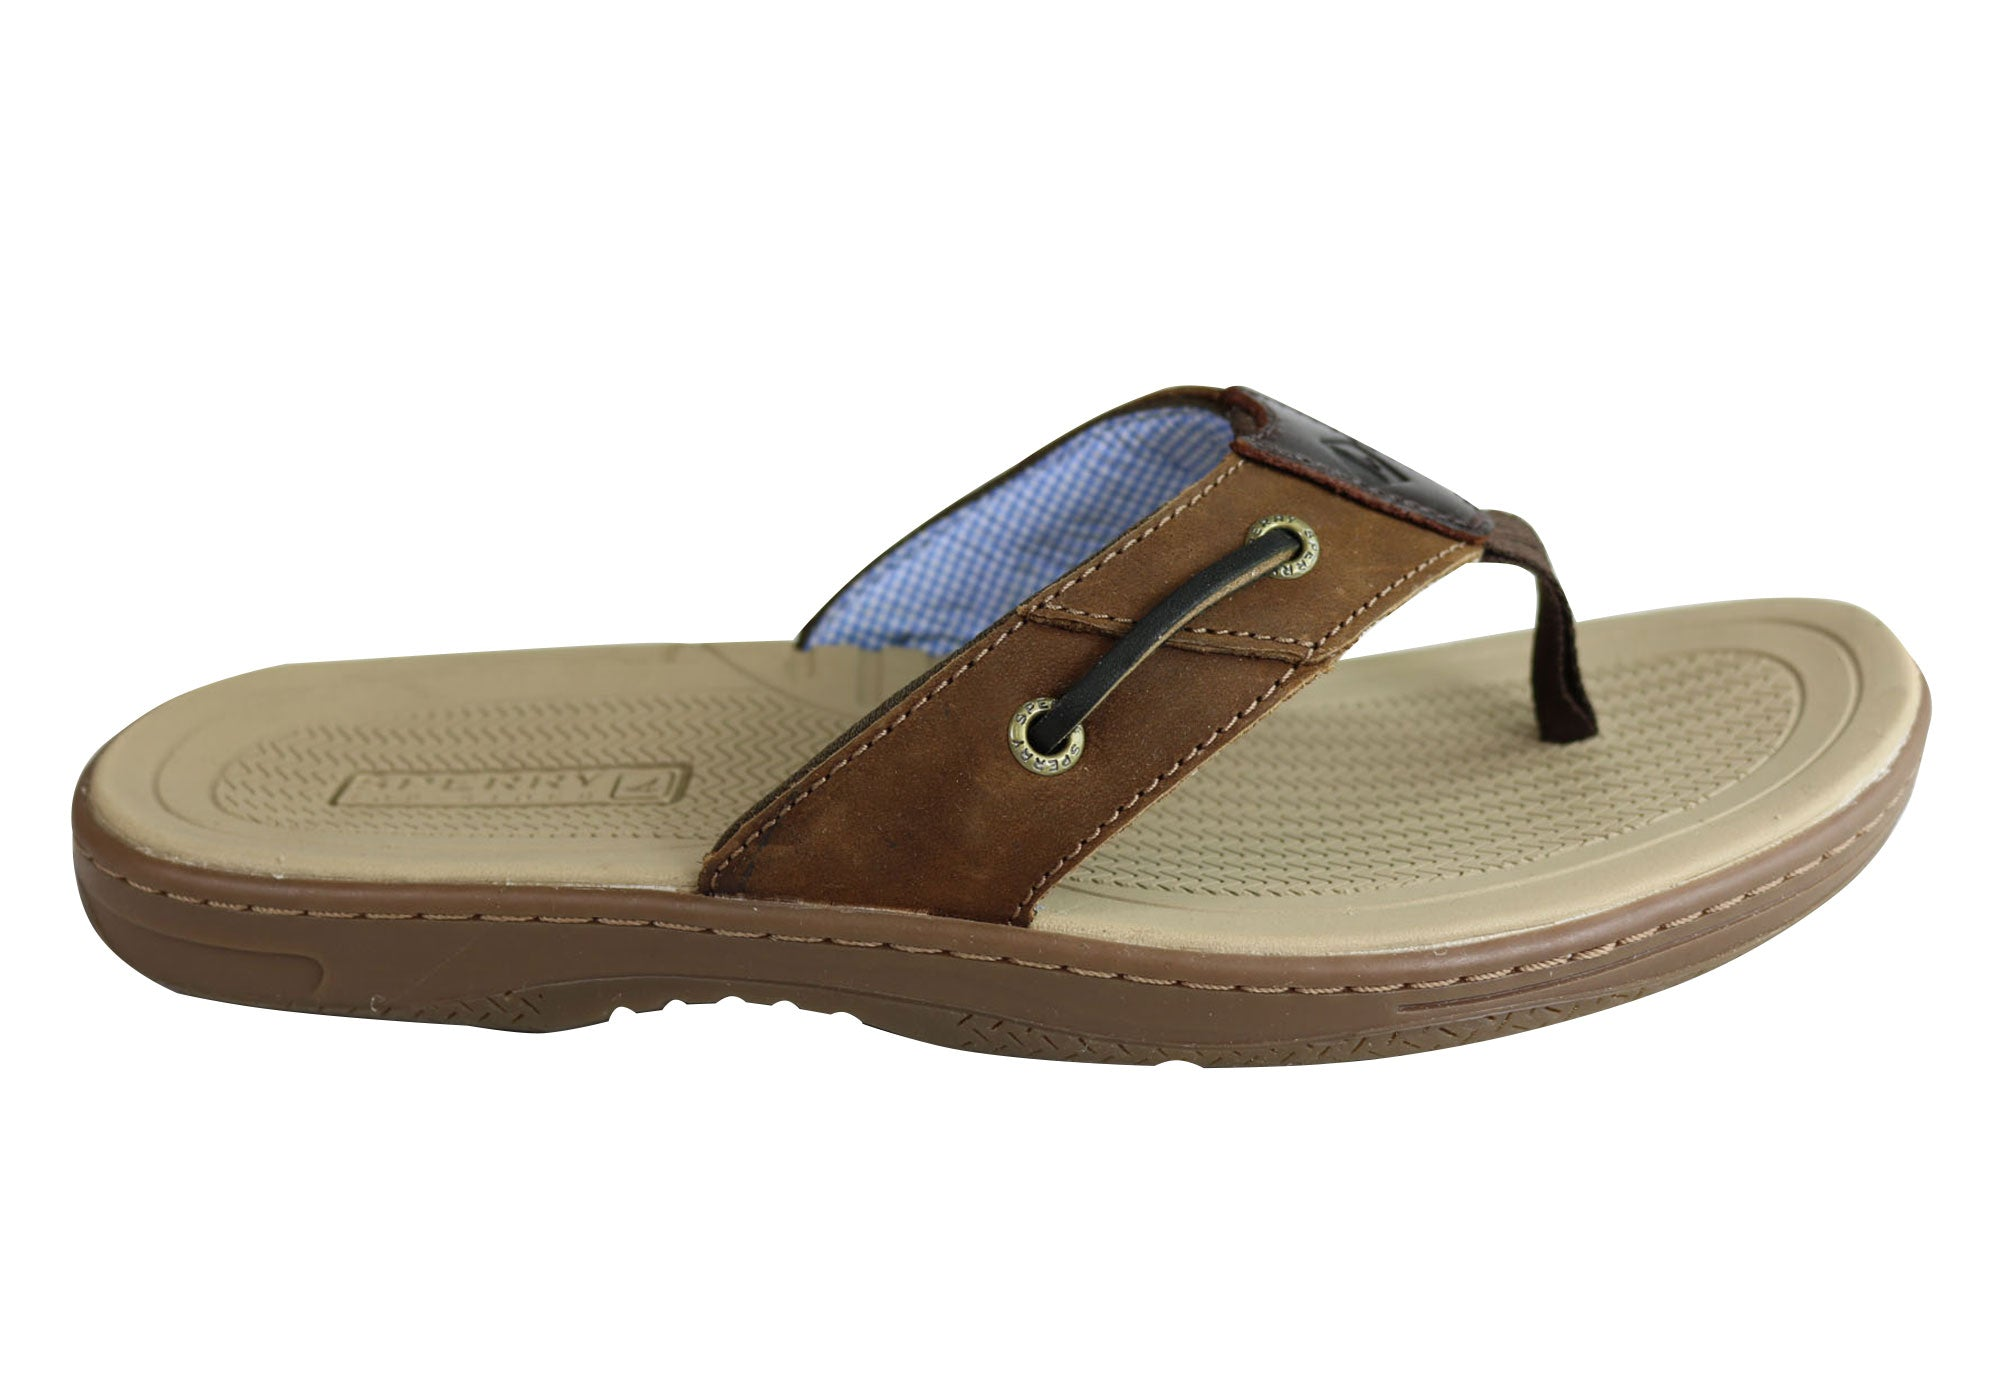 6586699a157c Details about Sperry Mens Comfortable Leather Baitfish Sandals Flip Flops  Thongs